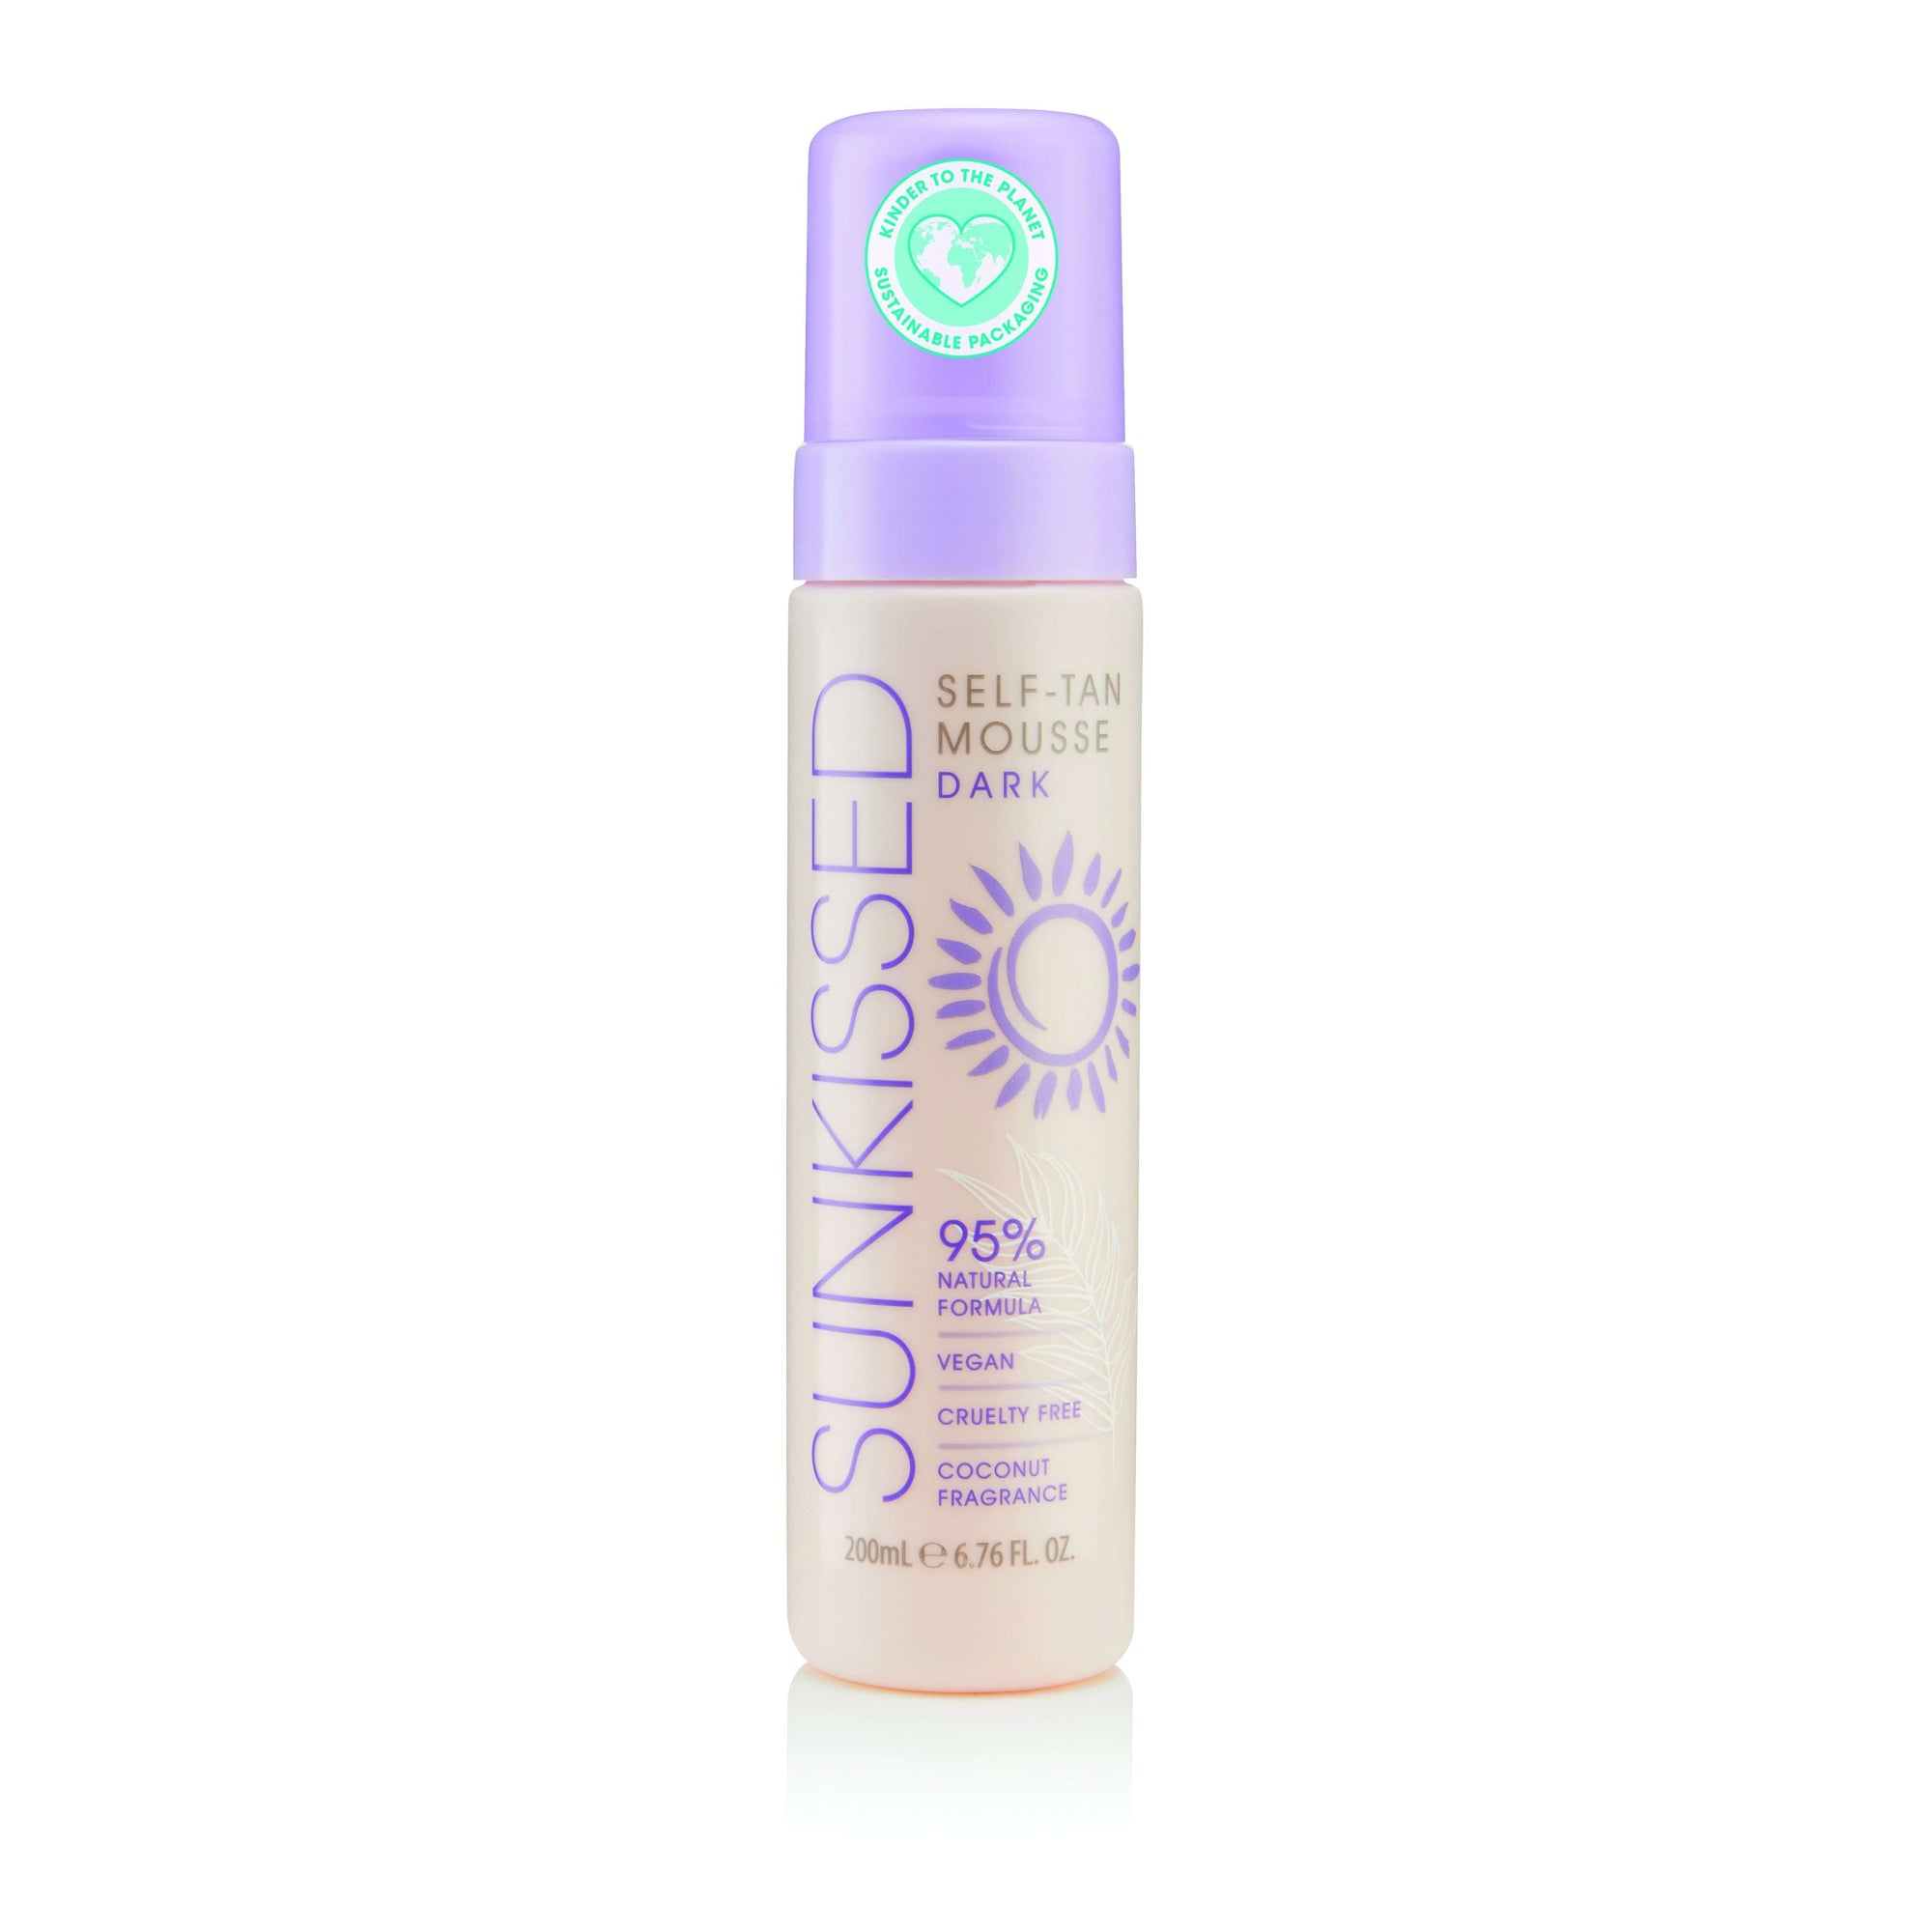 Sunkissed Self Tan Mousse Dark